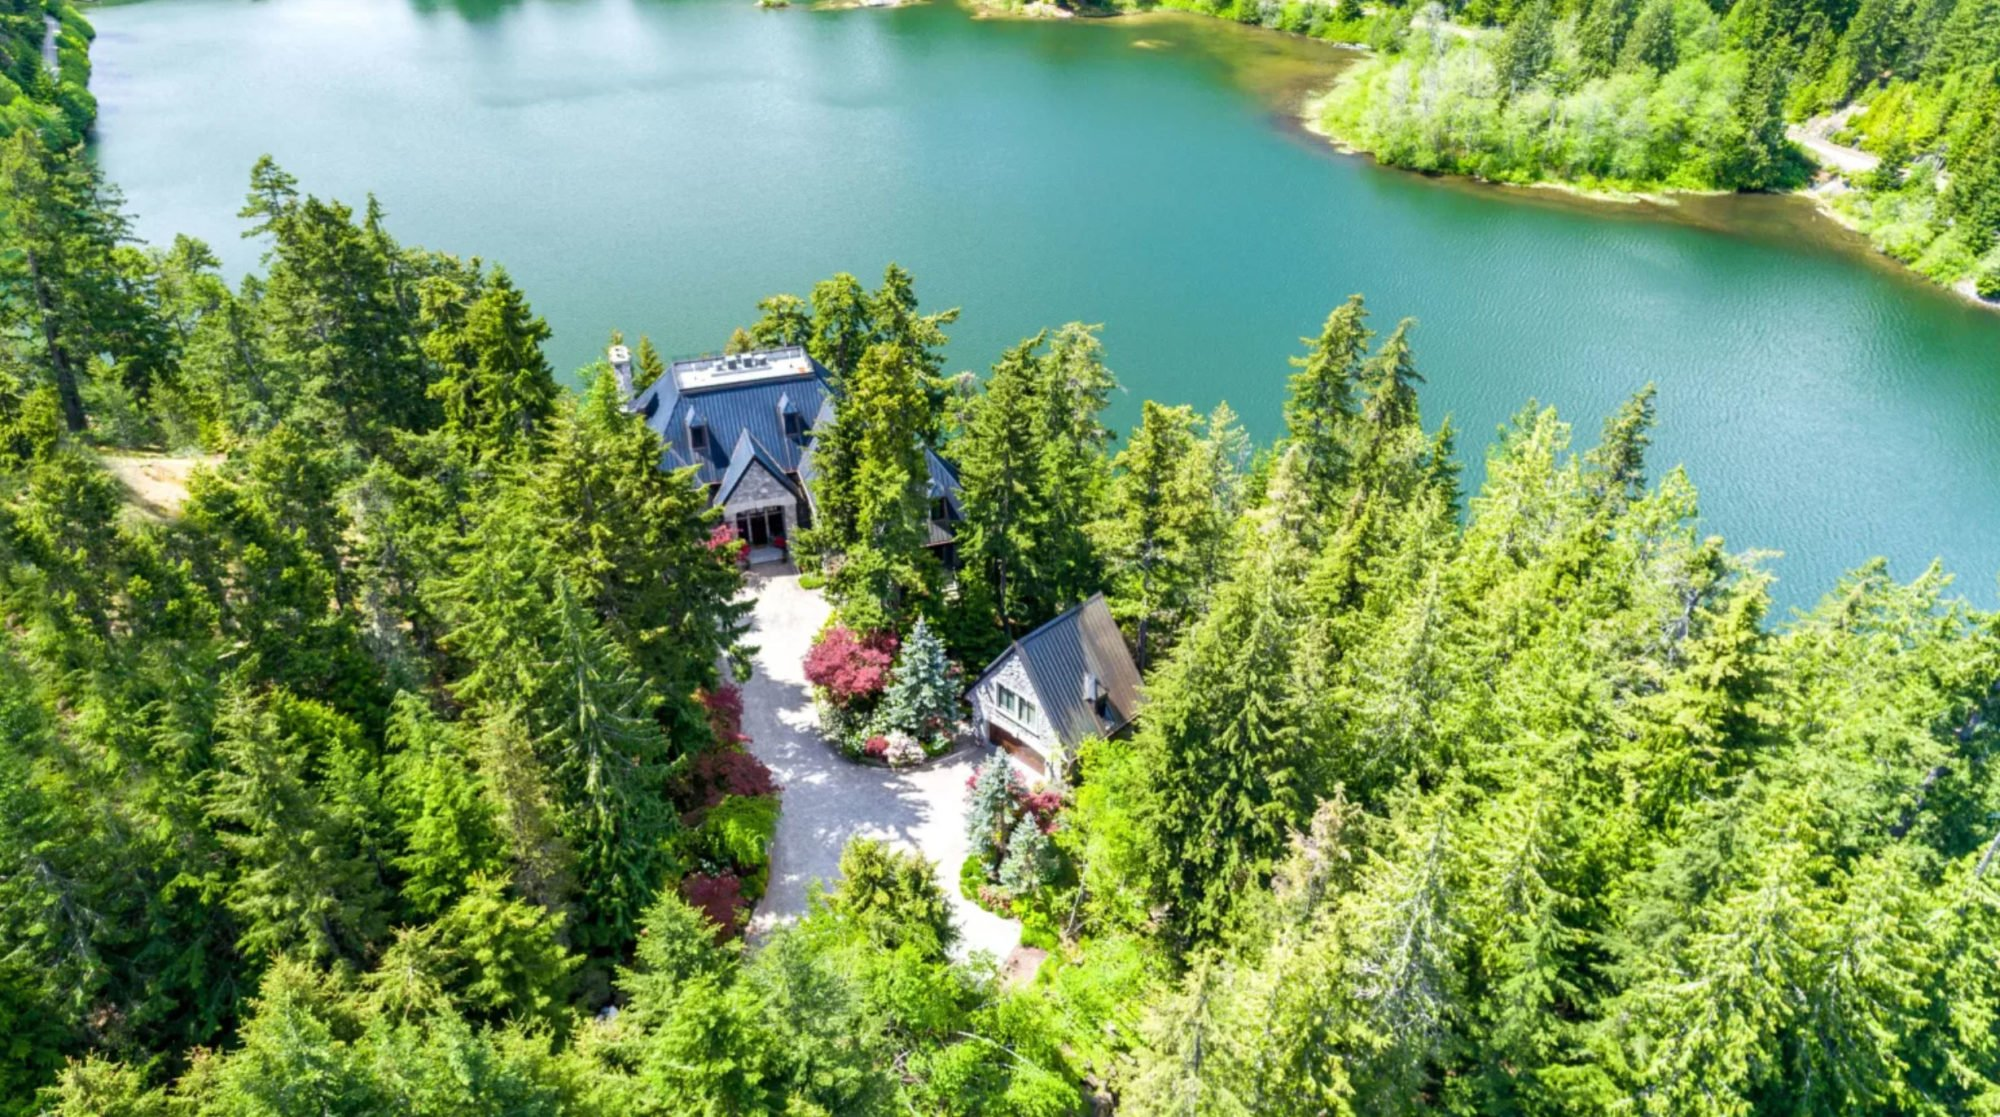 Whistler chateau fails to sell in online auction targeting Chinese buyers